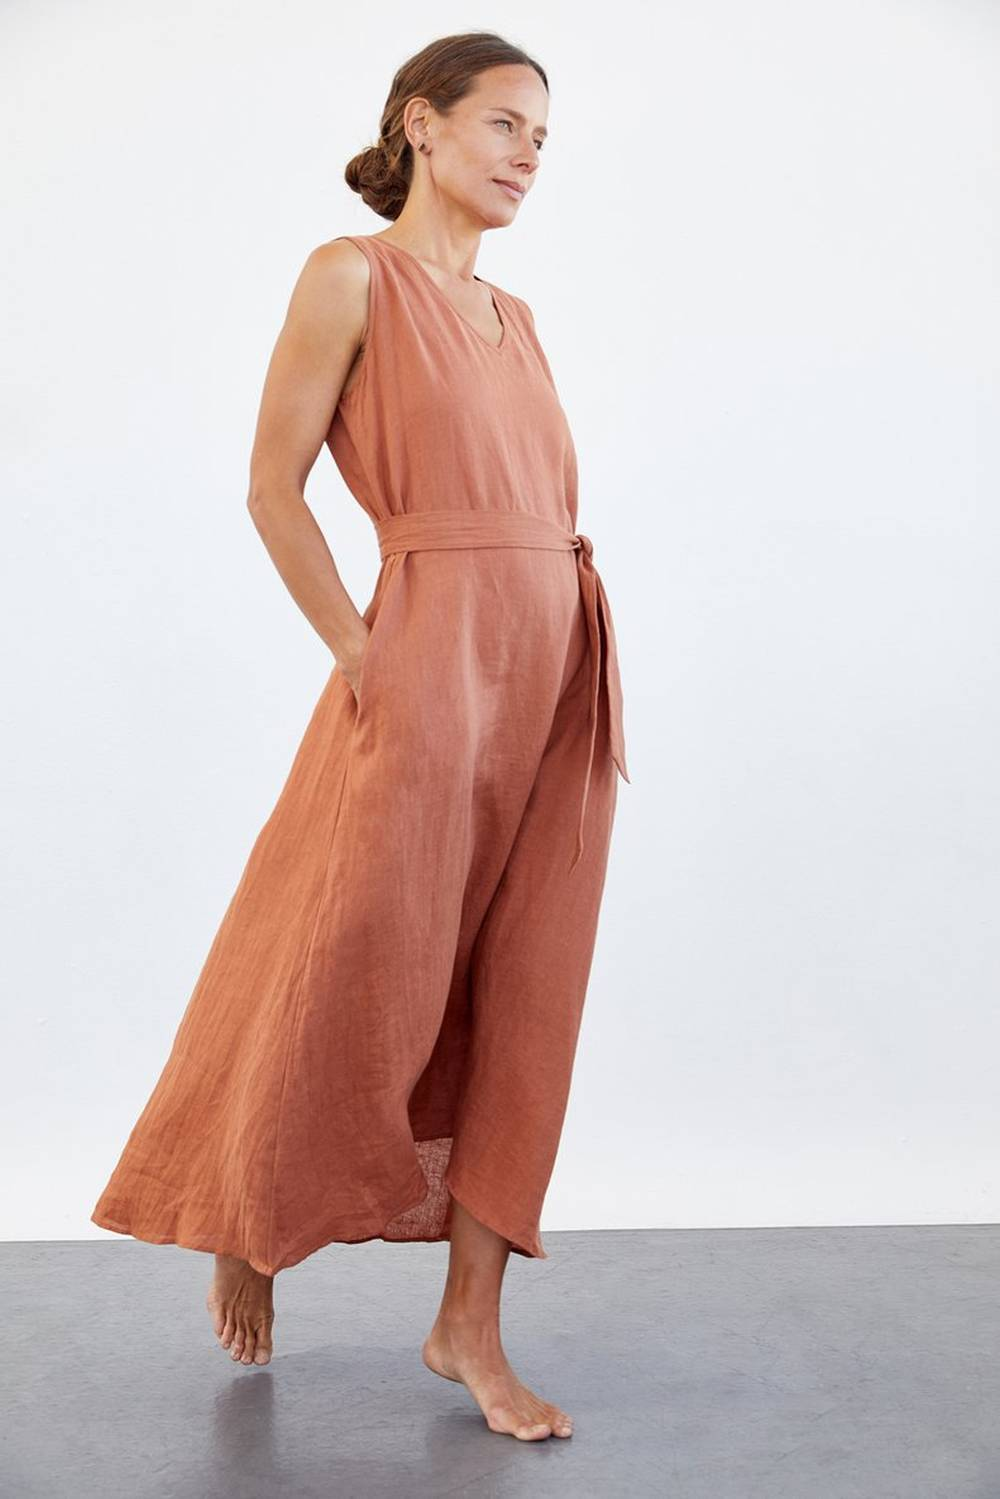 amour vert sustainable maternity clothes